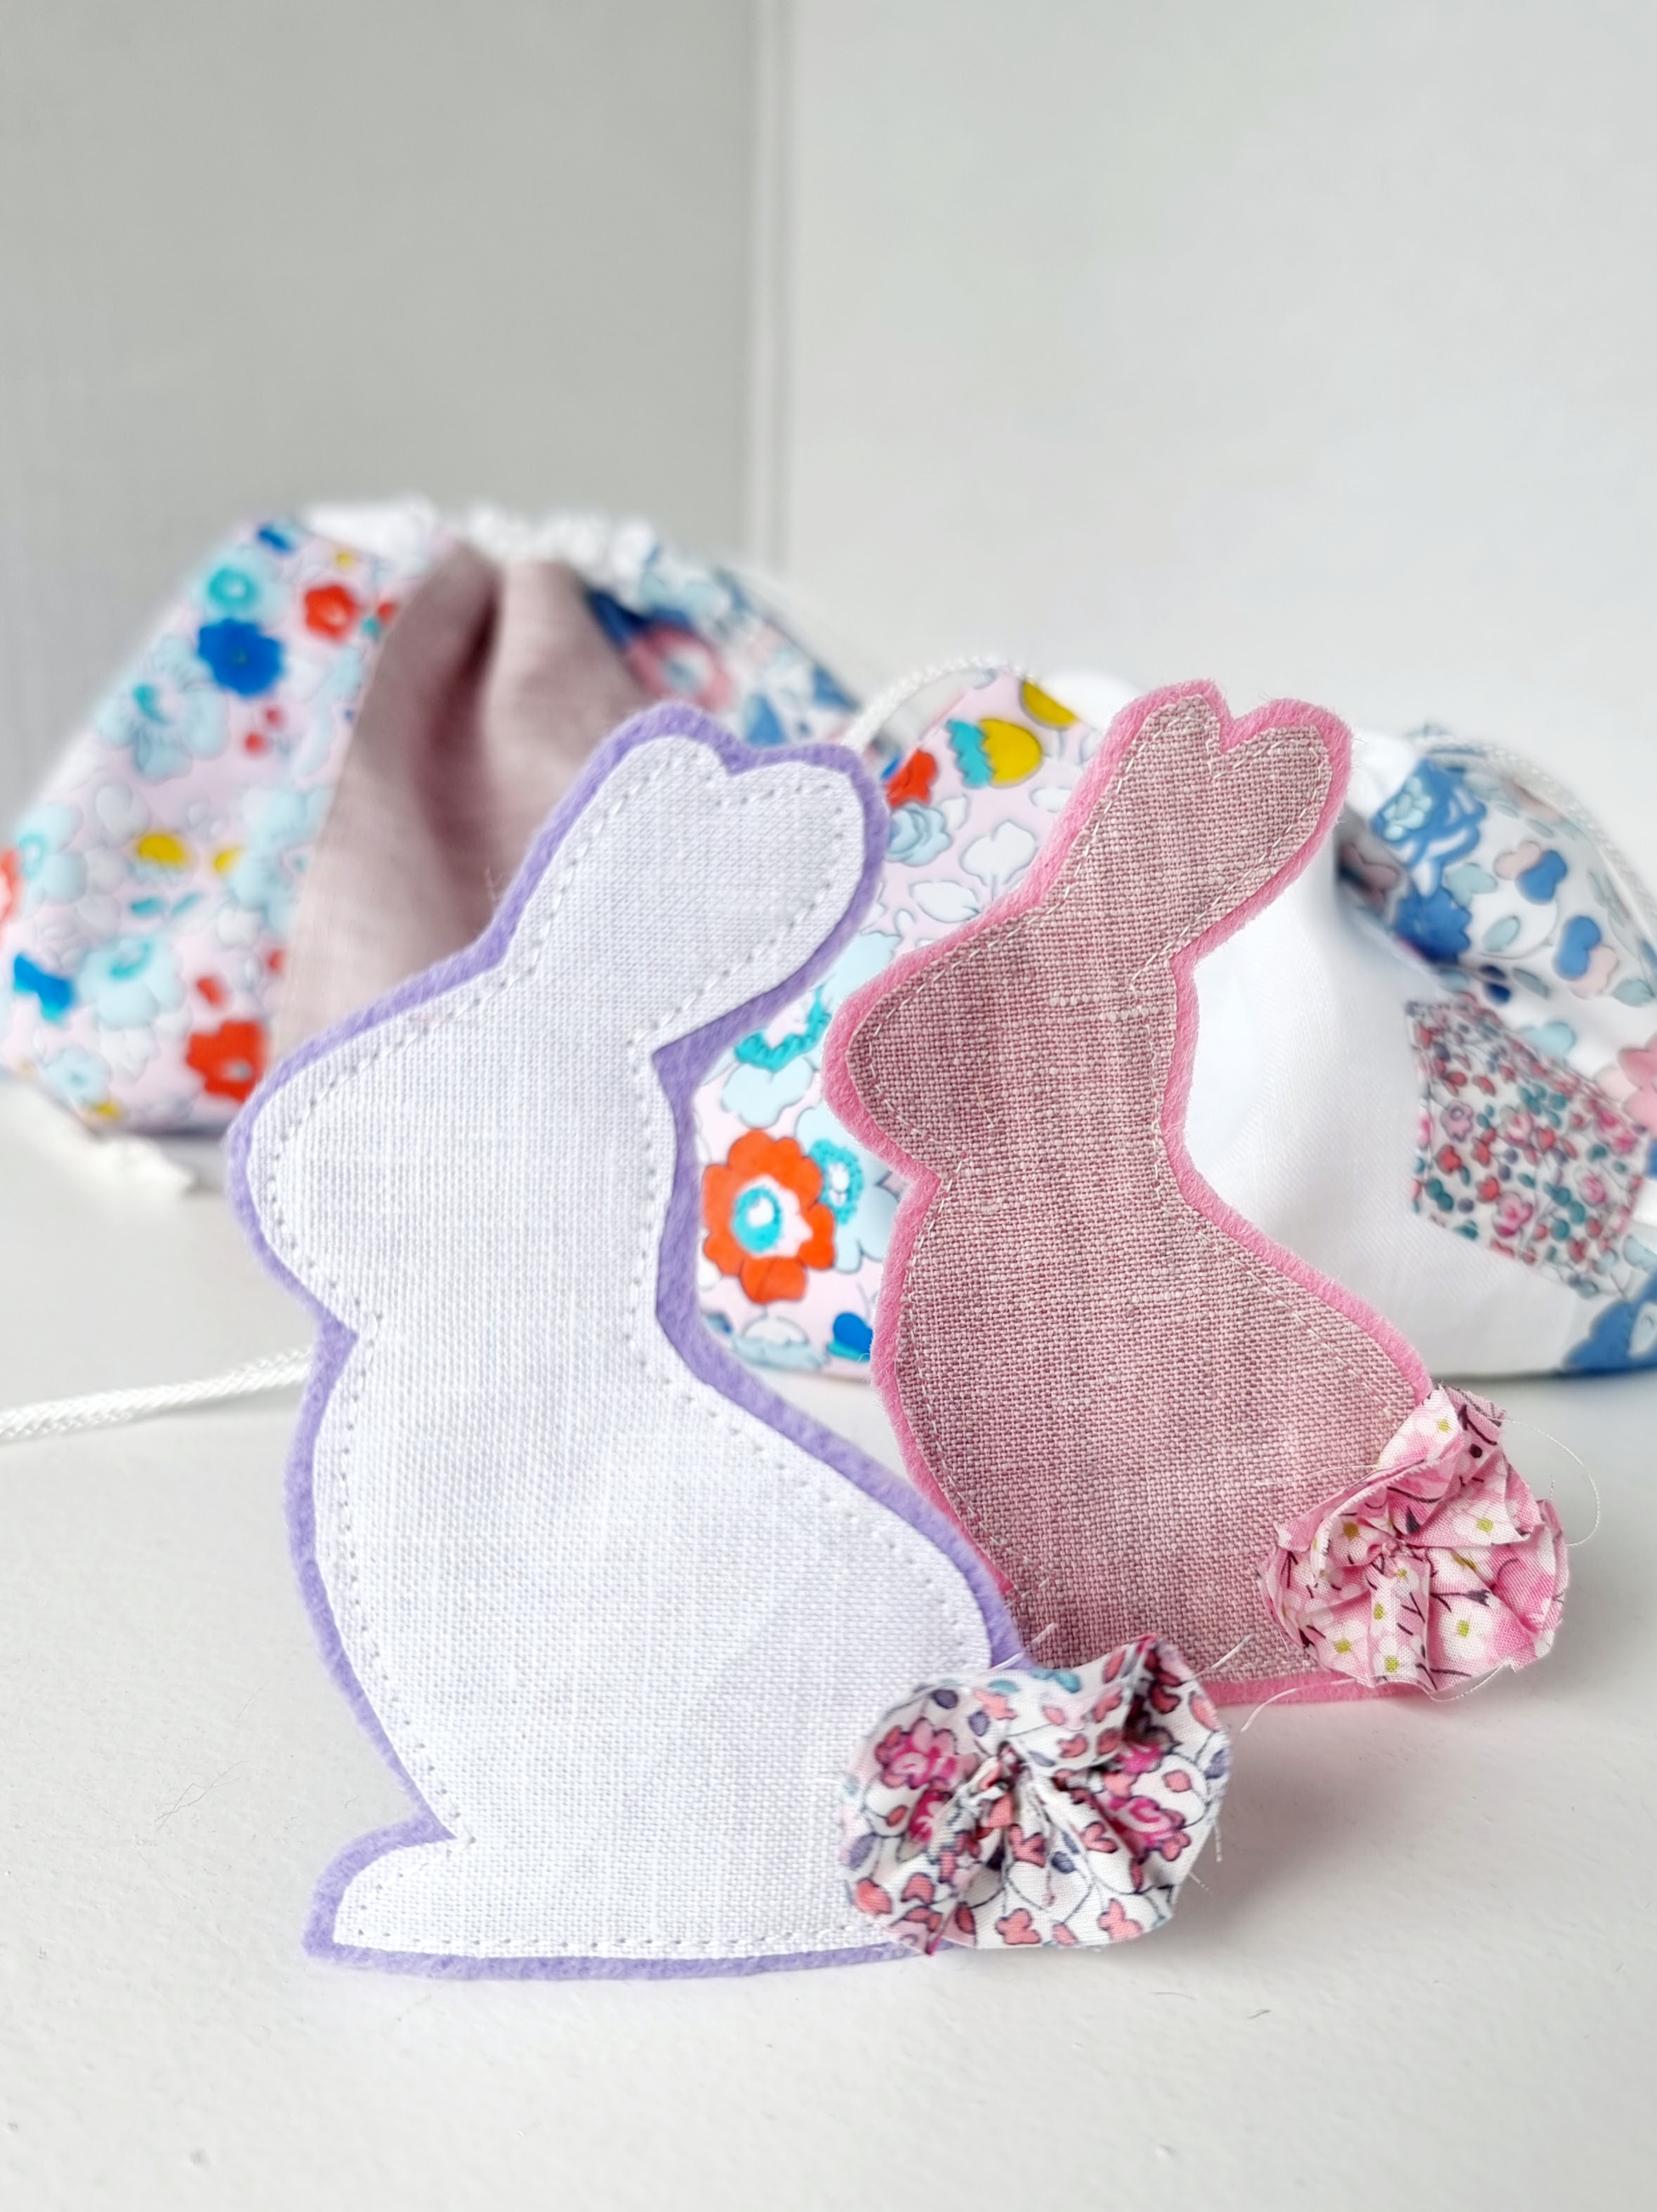 Felt and Fabric Bunny - Free Sewing Pattern